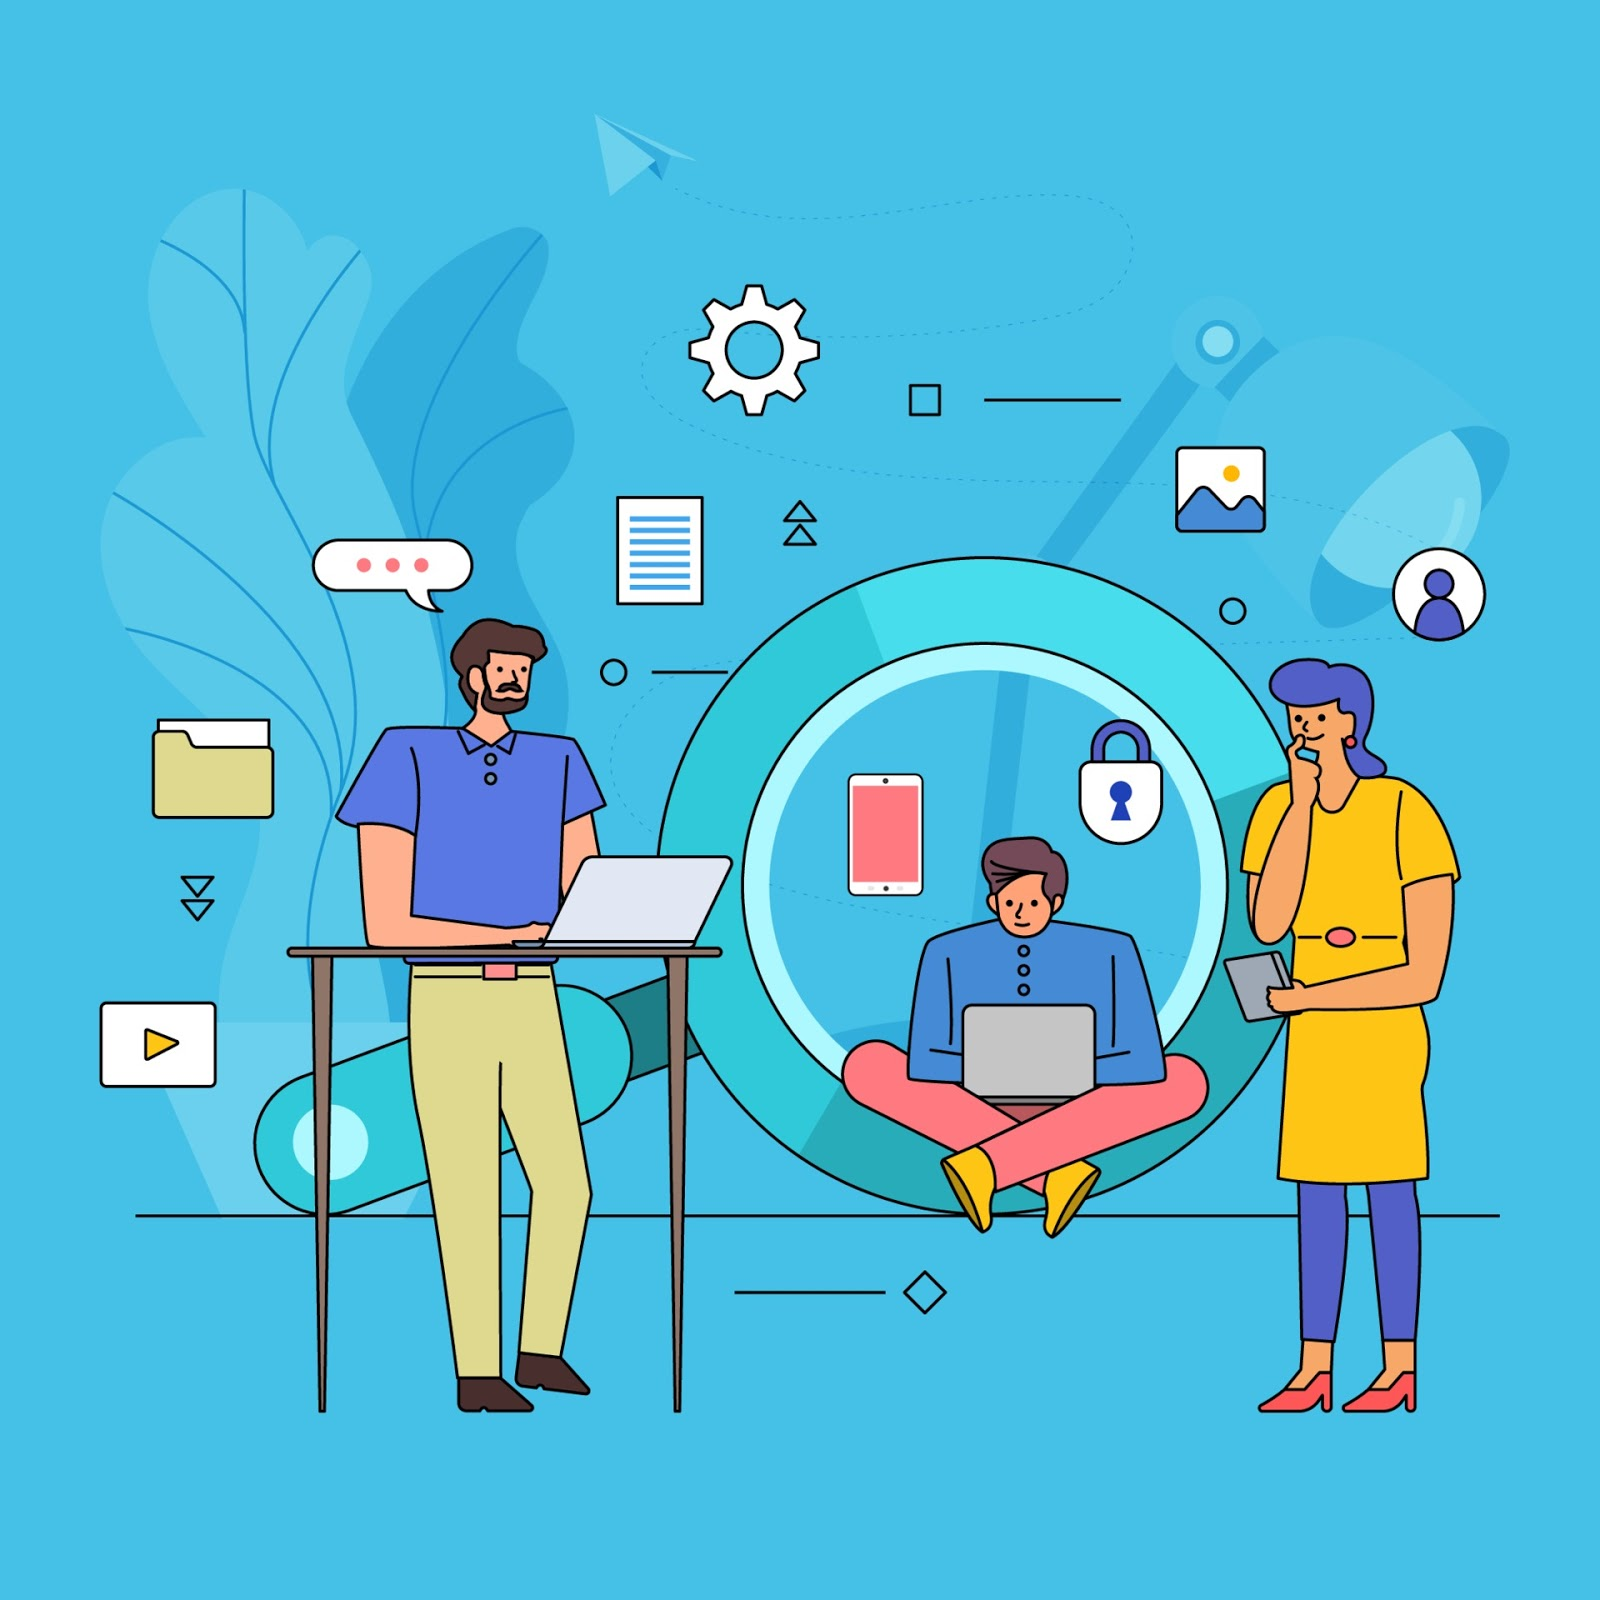 Conducting customer research is a crucial part of ux design